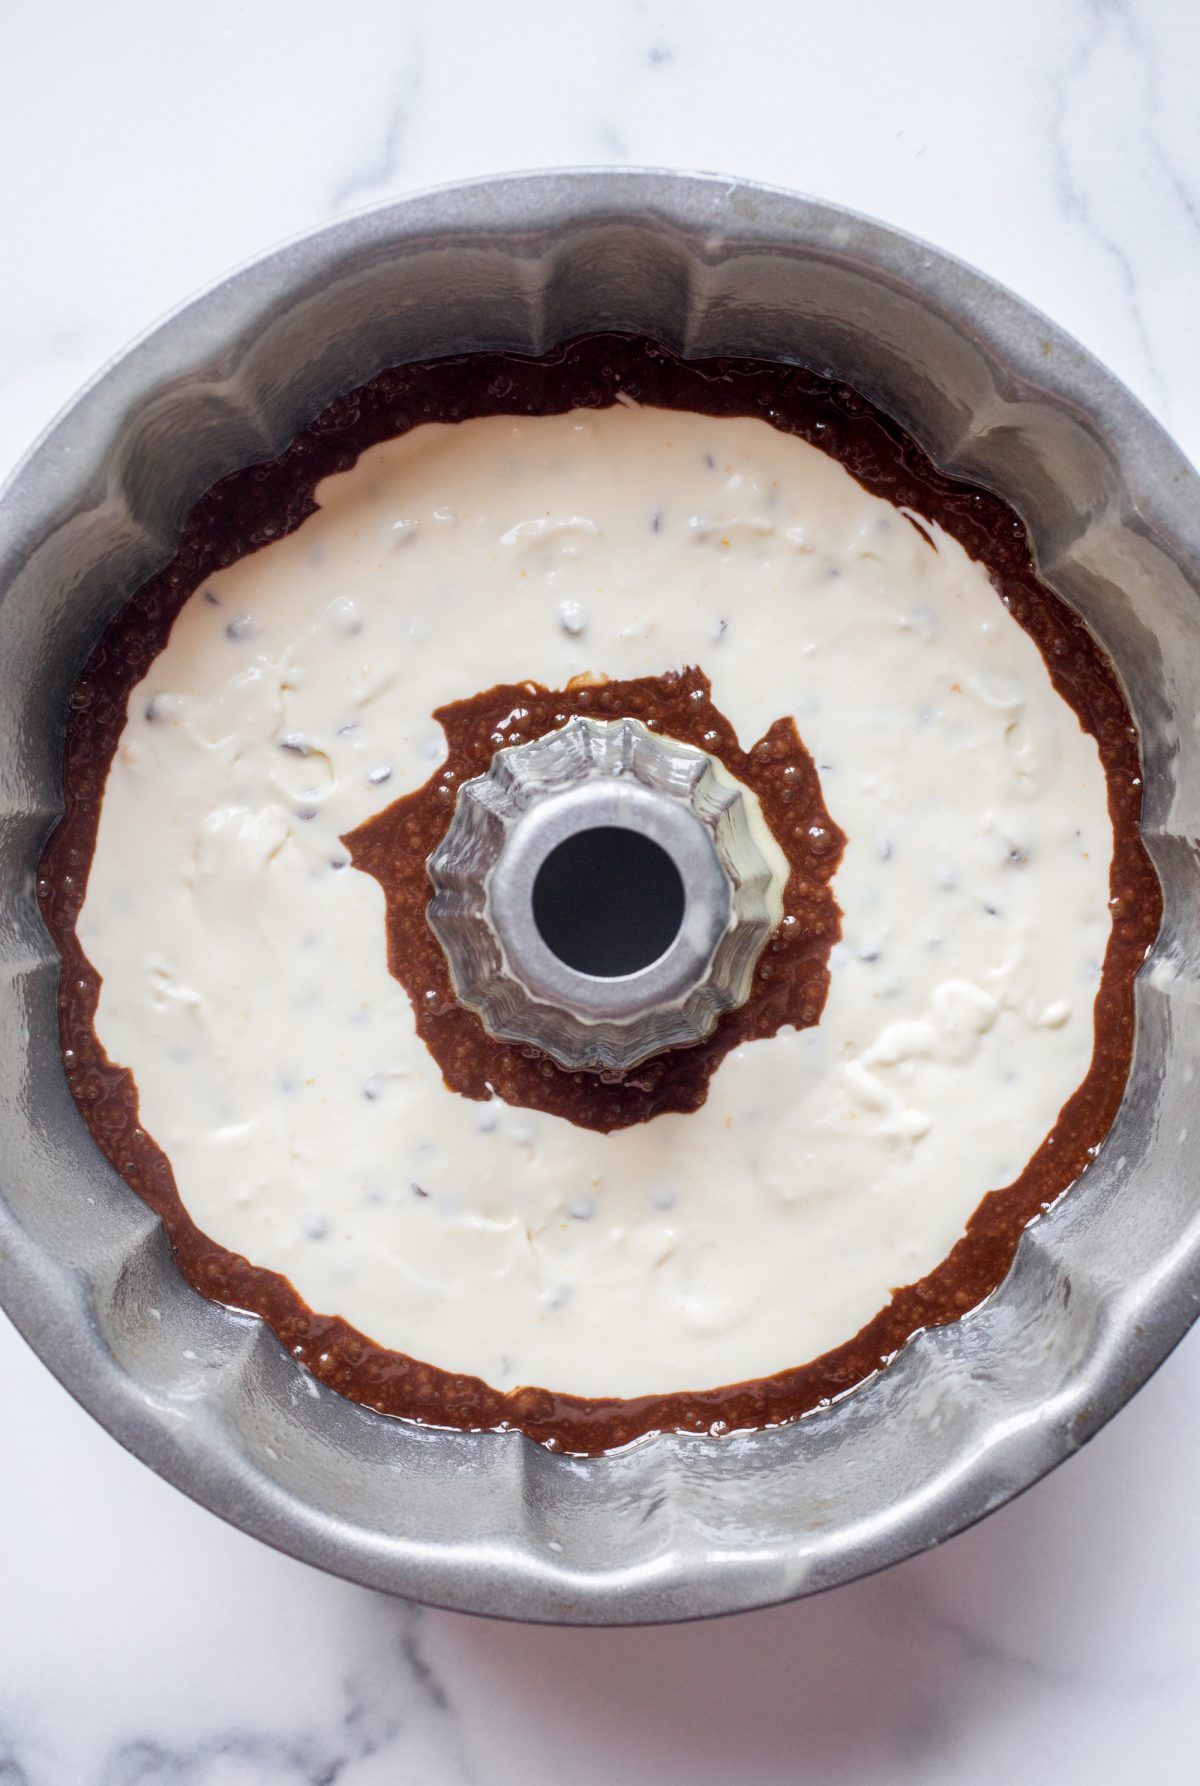 A bundt cake pan with chocolate cake batter under a layer of cannoli cream